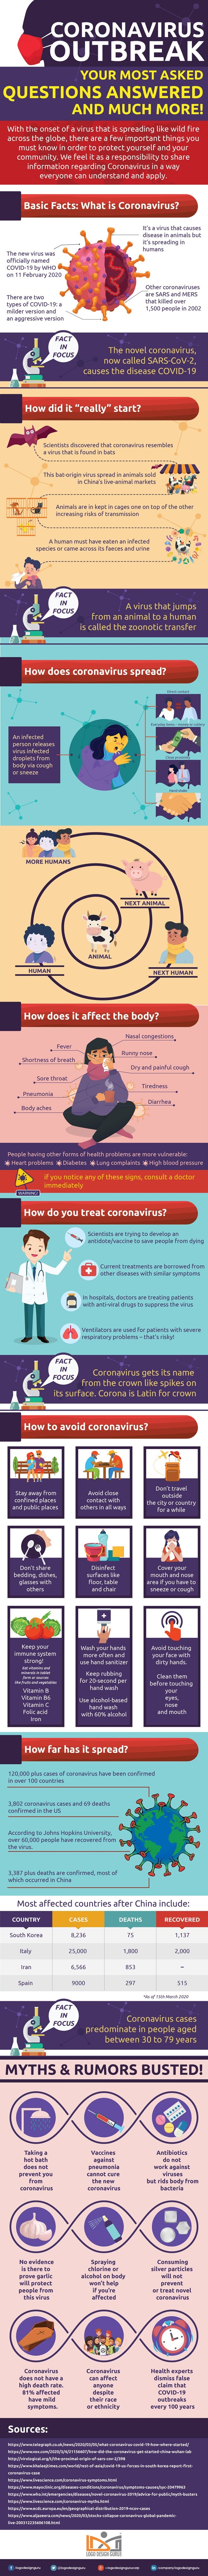 Novel Coronavirus: All You Need To Know About COVID-19 #infographic